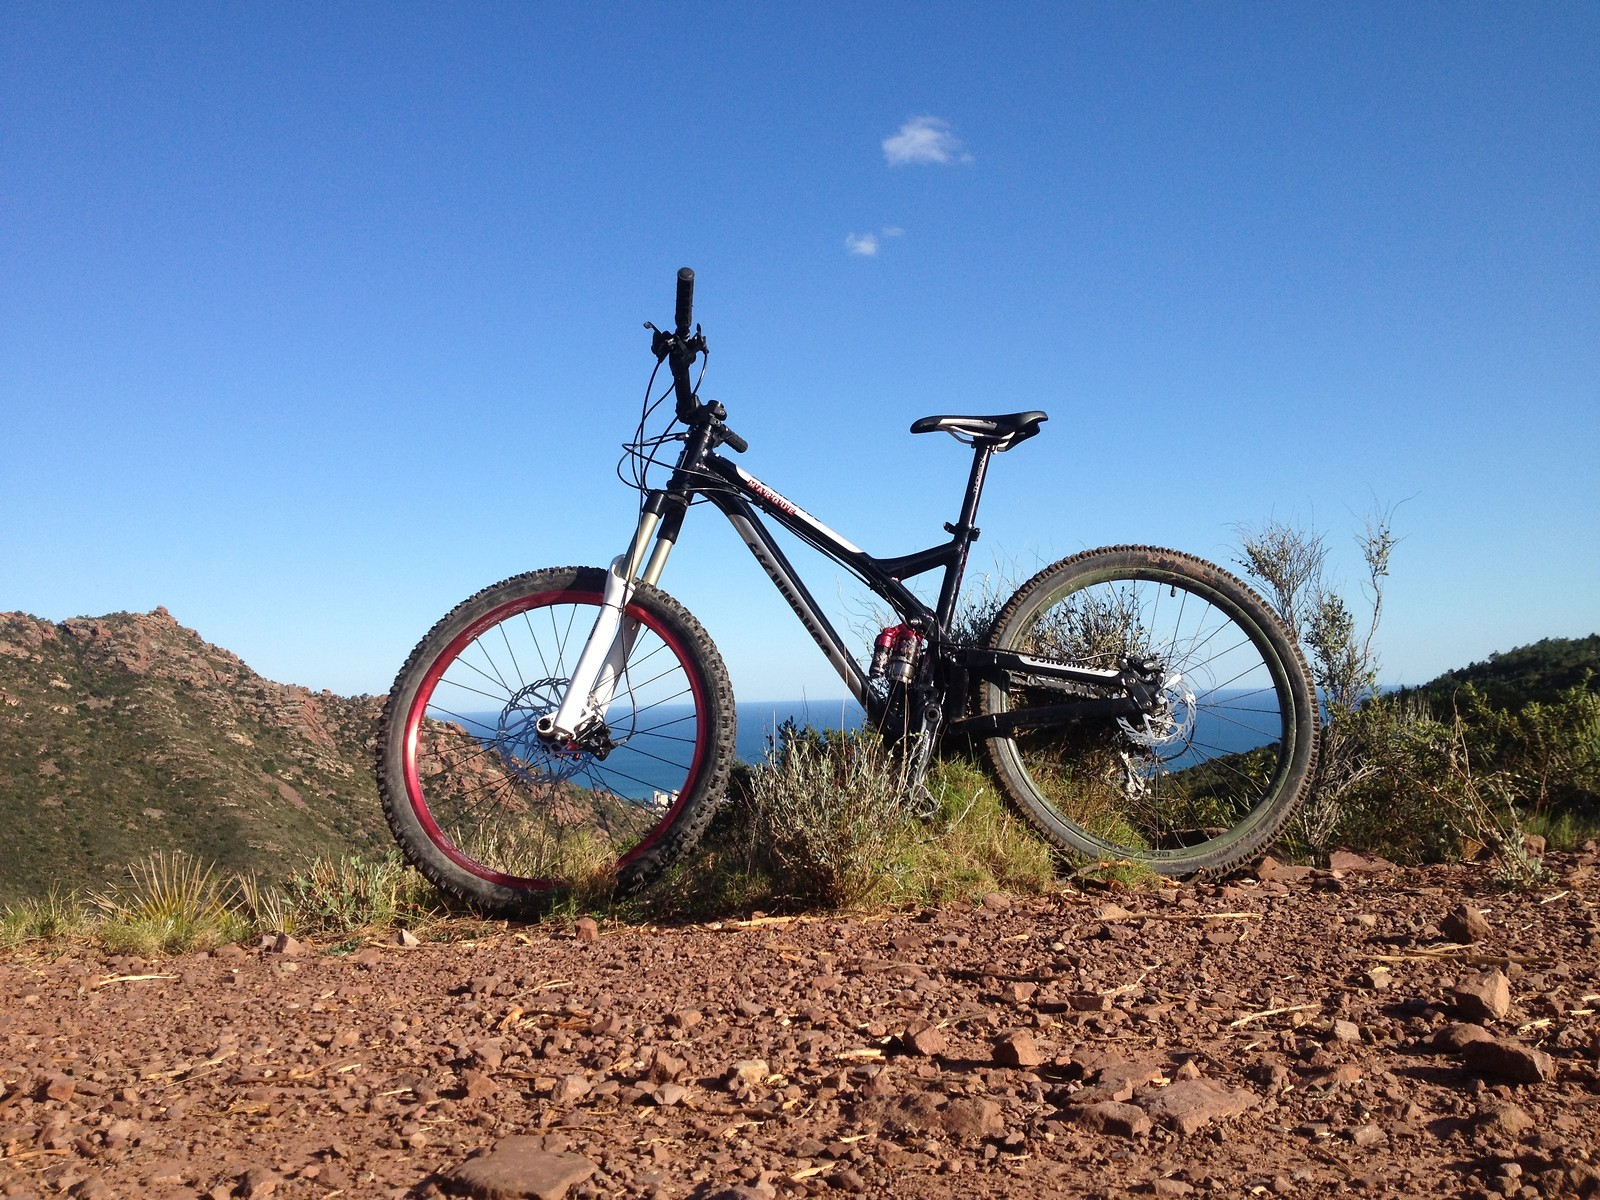 Beach to summit to beach in a couple hours - JoseMPM - Mountain Biking Pictures - Vital MTB